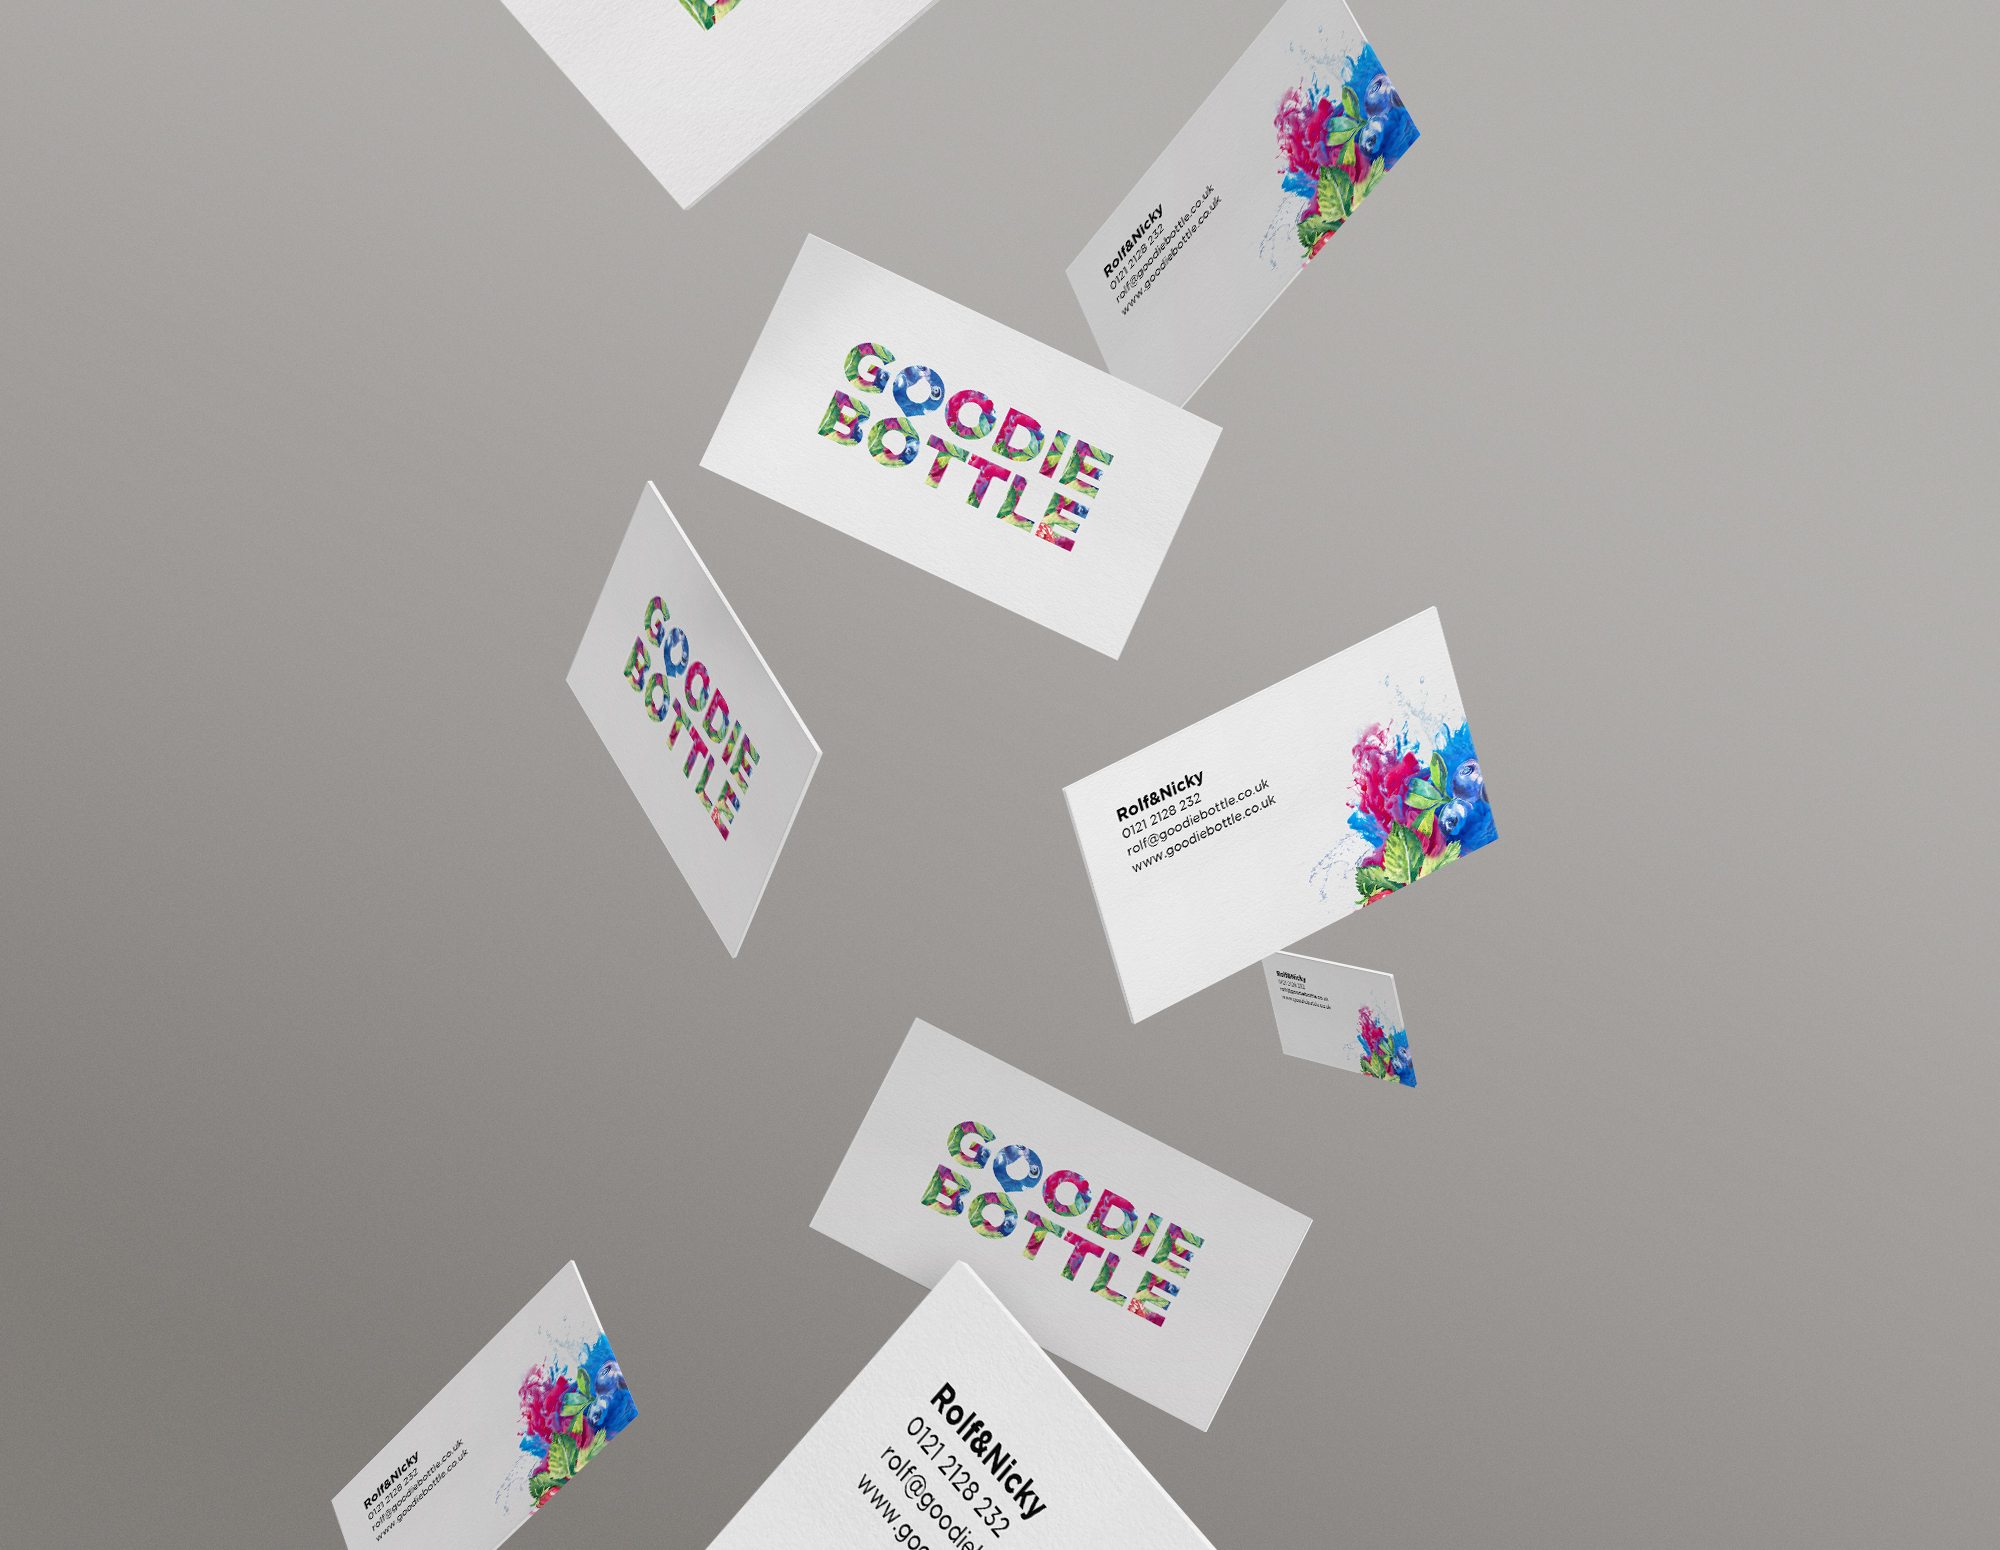 GOODIEBOTTLE-Businesscards-Mock-up.jpg